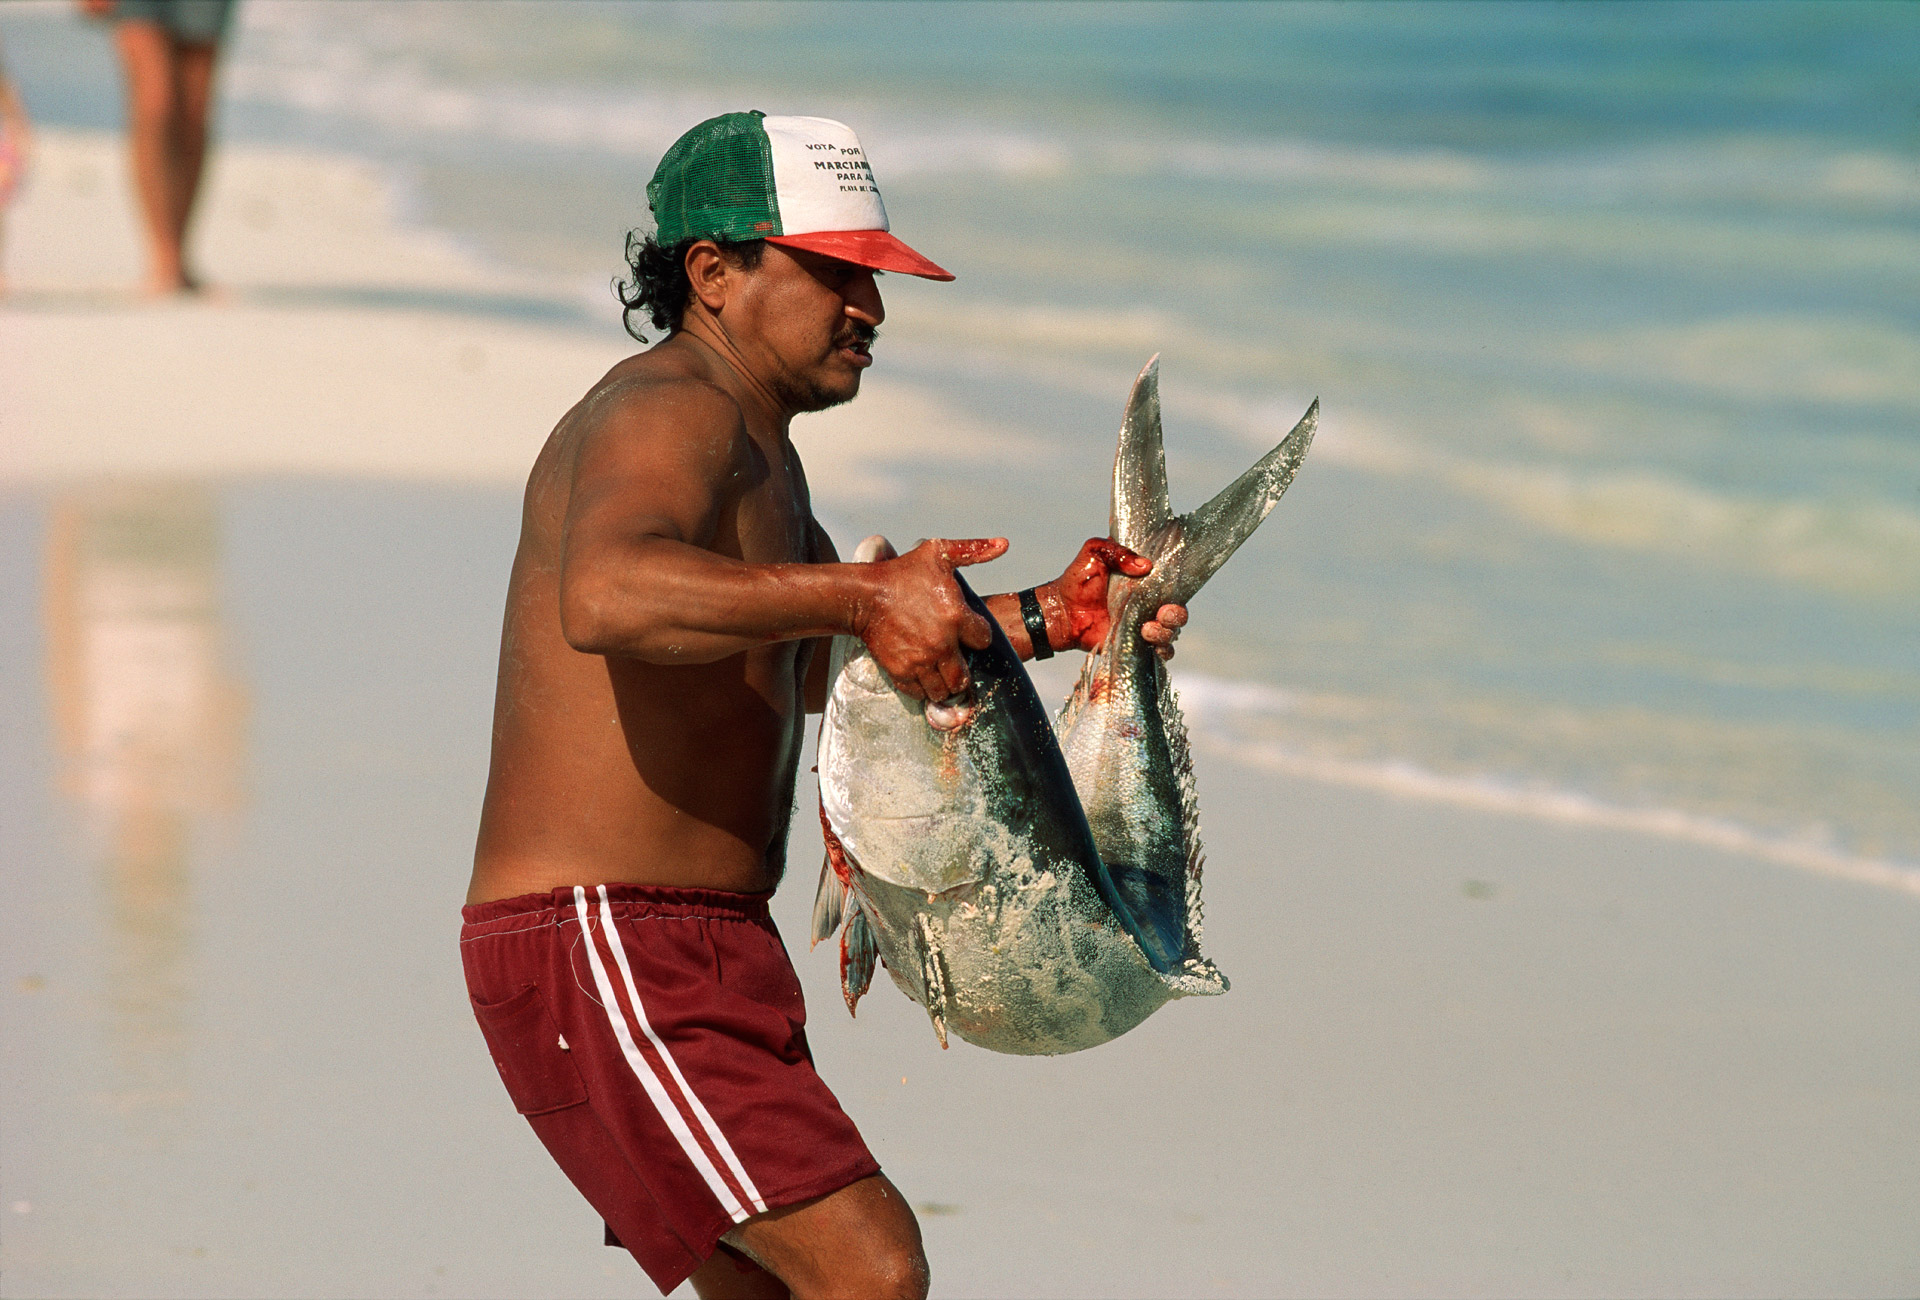 Fisherman with a big fish on the beach in Playa del Carmen in Mexico